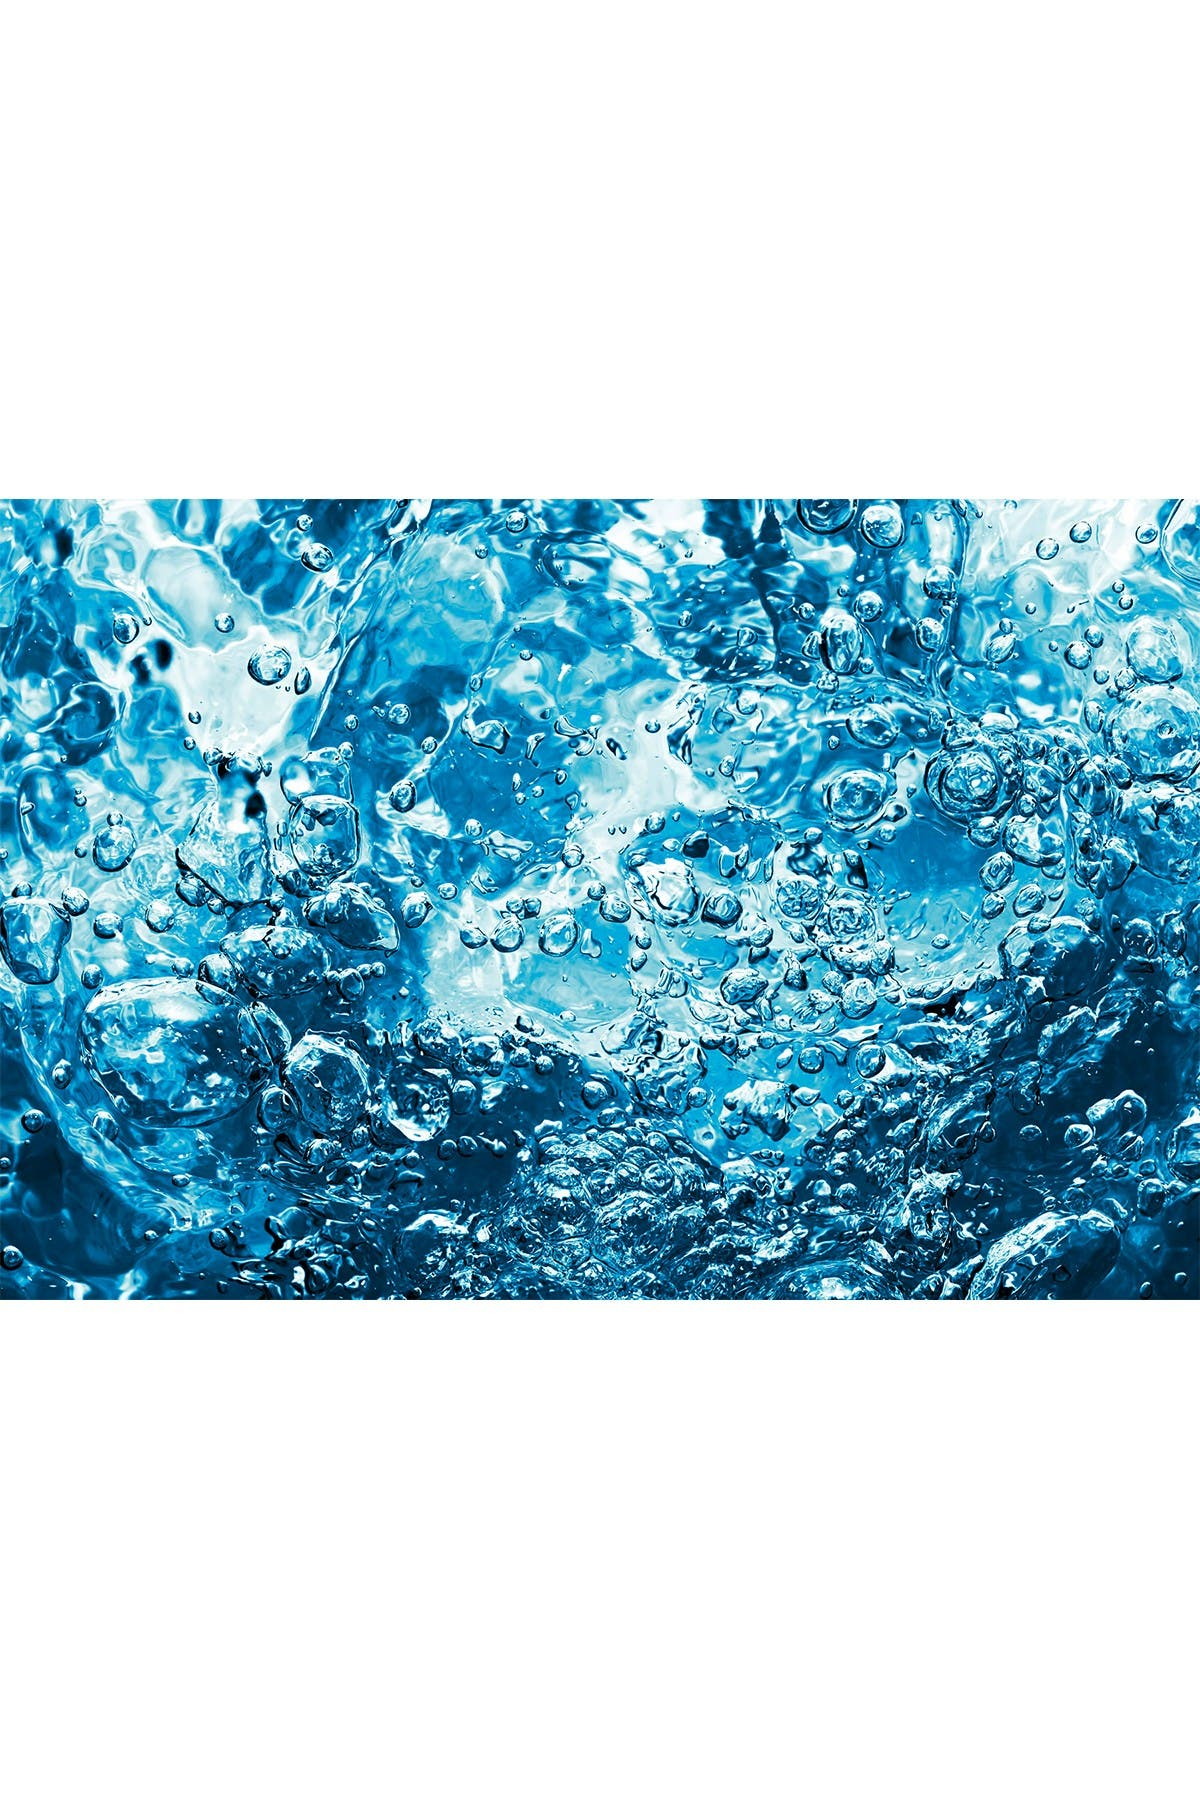 Image of WallPops! Sparkling Water Wall Mural